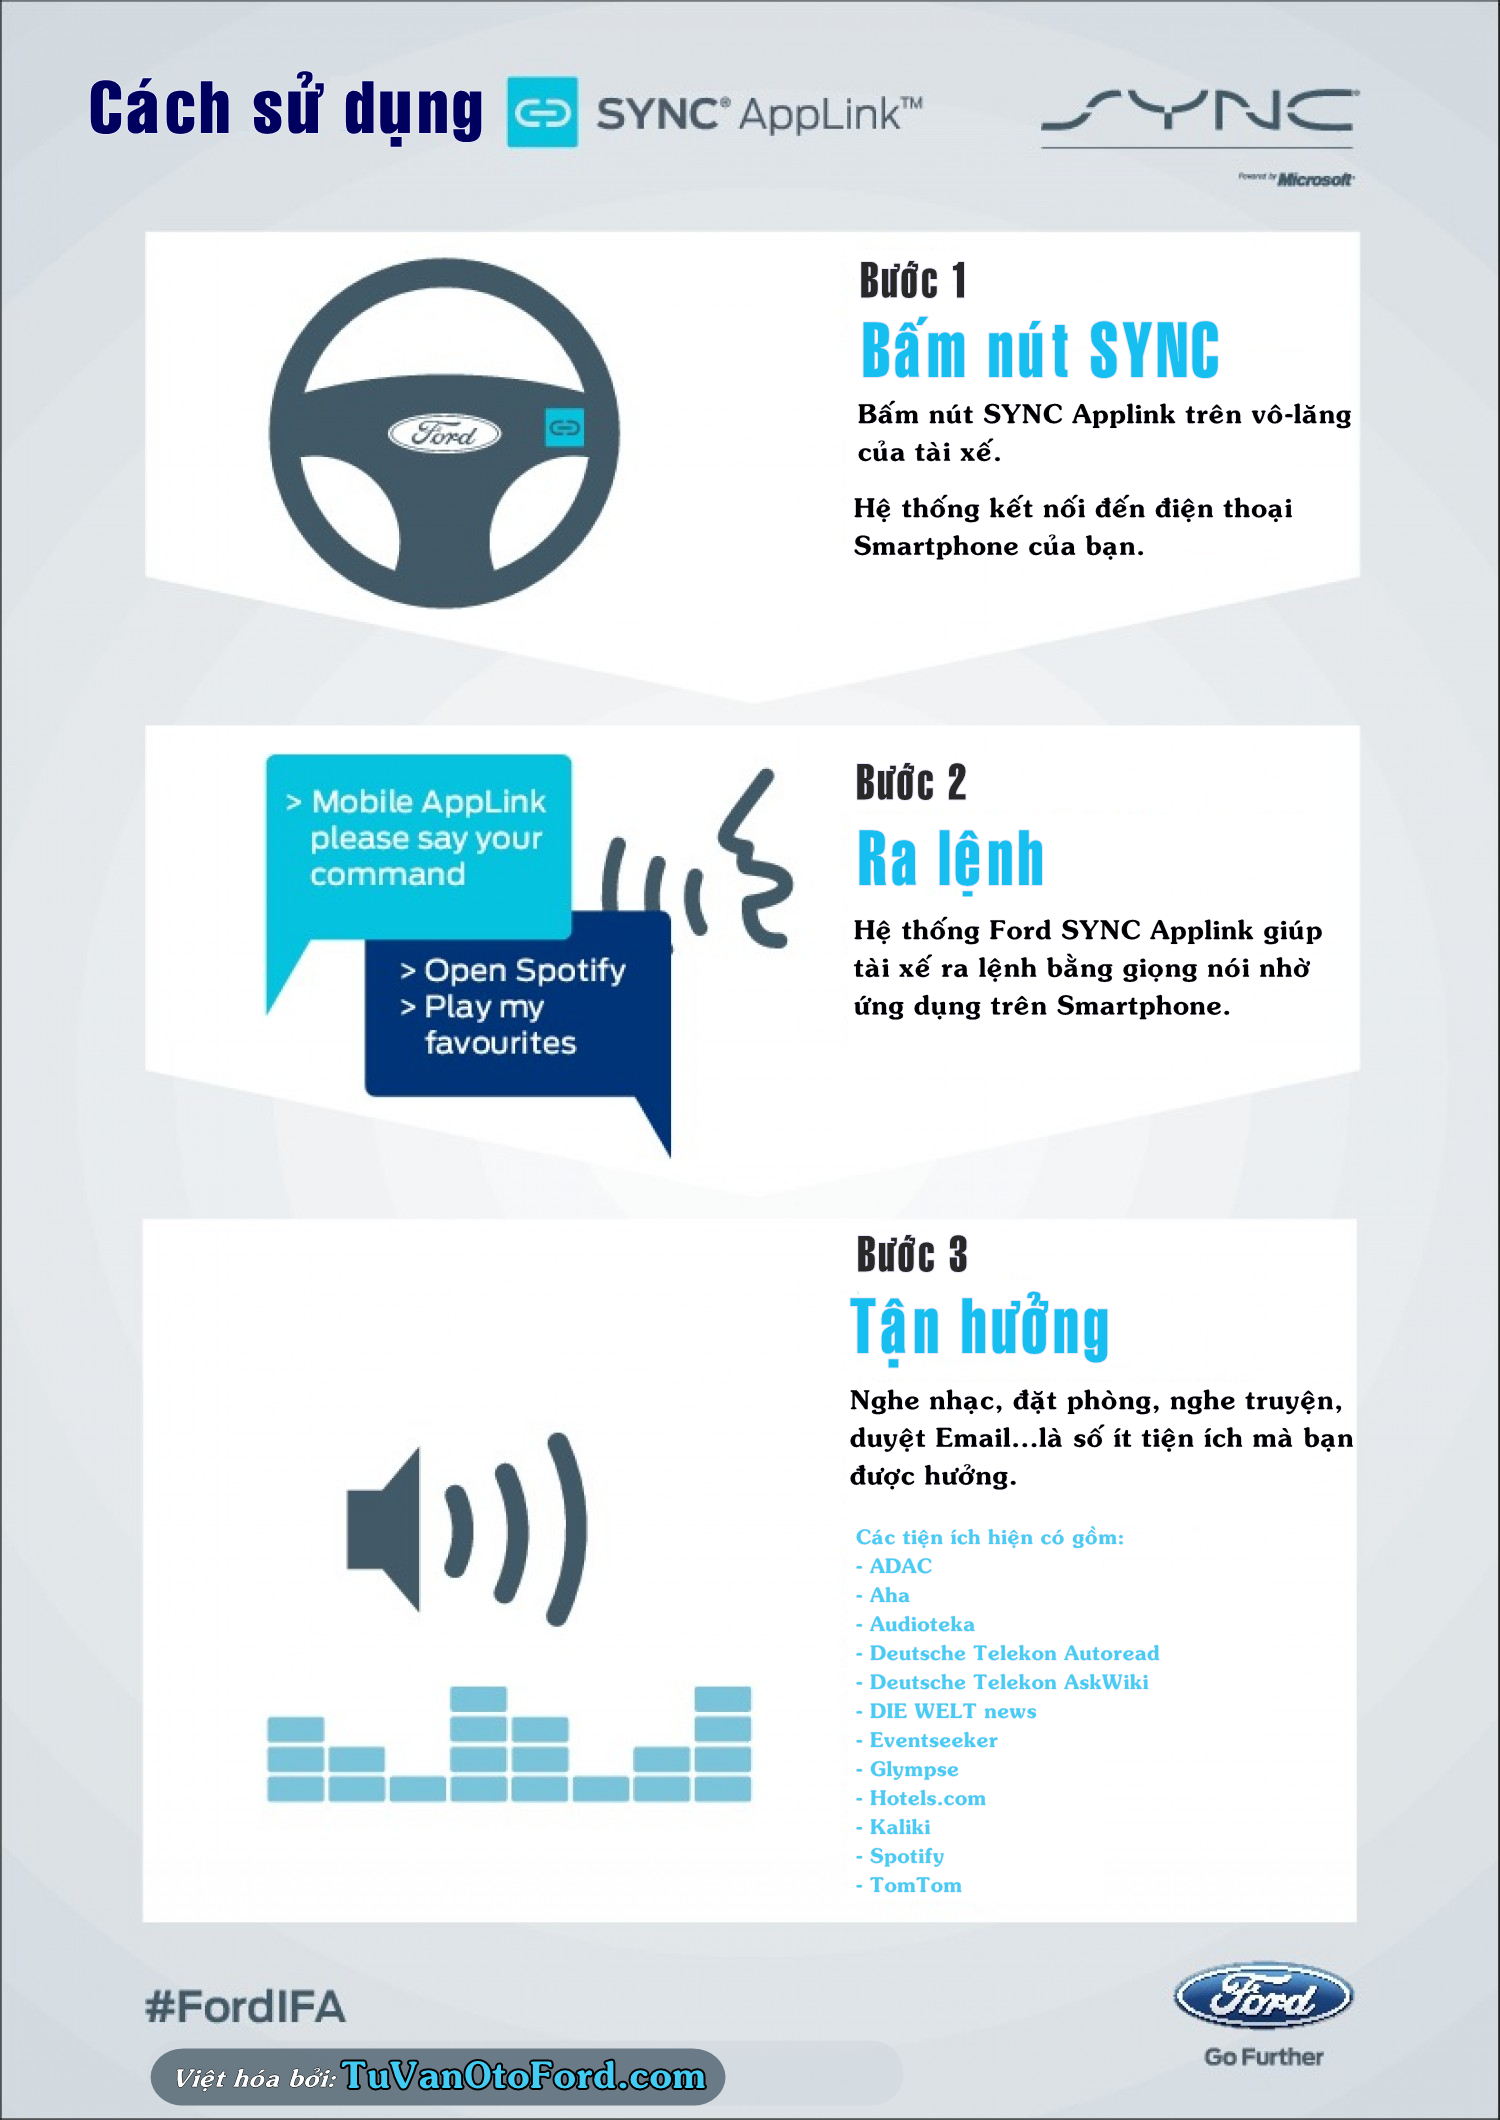 Hệ thống Ford SYNC Infographic